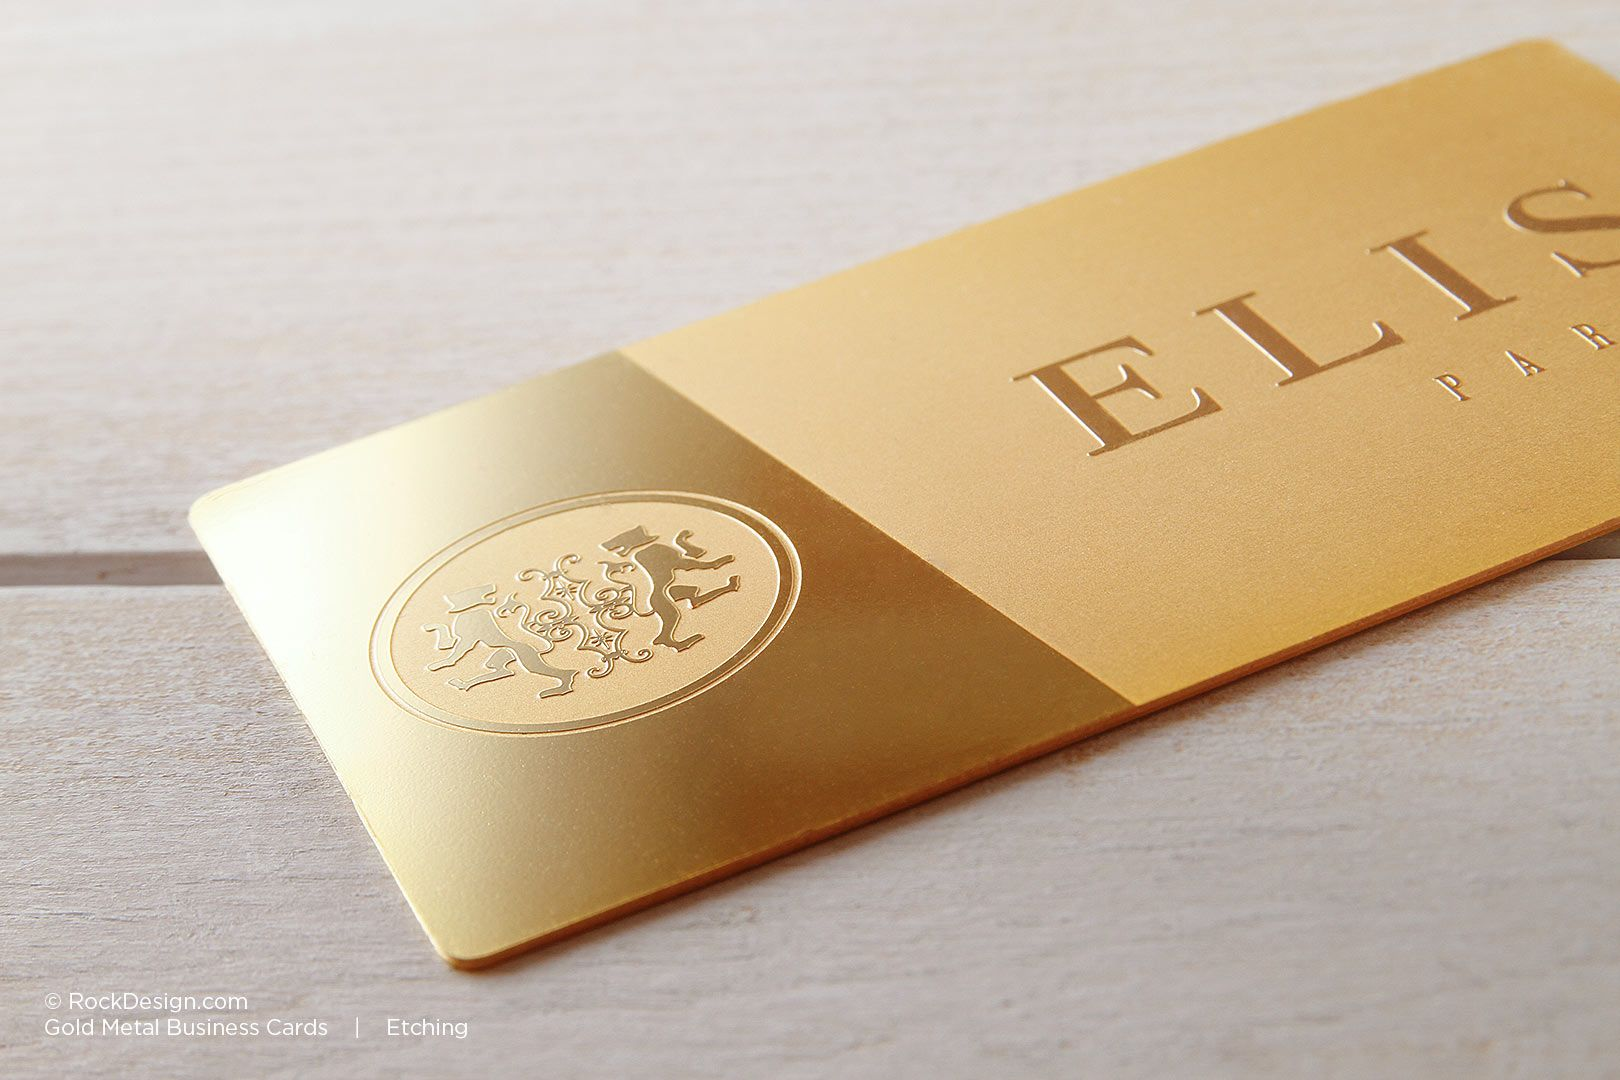 Gold metal business cards rockdesign luxury business card gold metal business cards rockdesign luxury business card printing lp official pinterest luxury business cards card printing and business cards reheart Choice Image